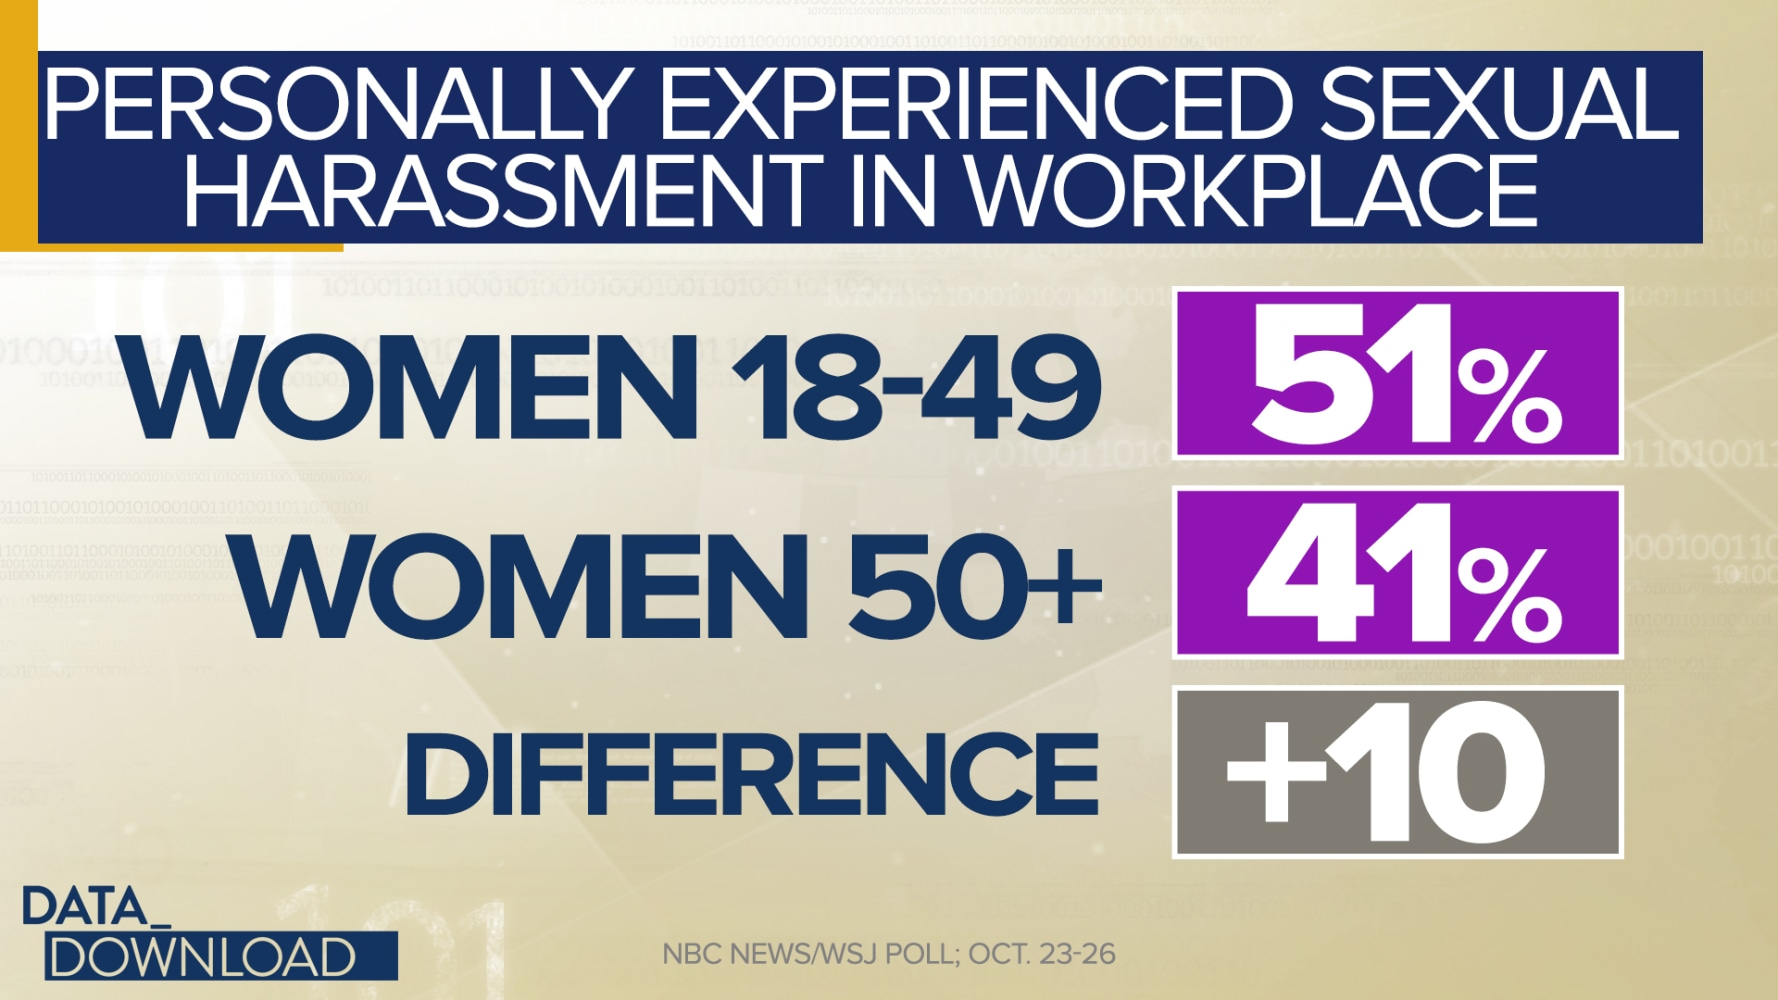 Sexual harassment statistics in the workplace